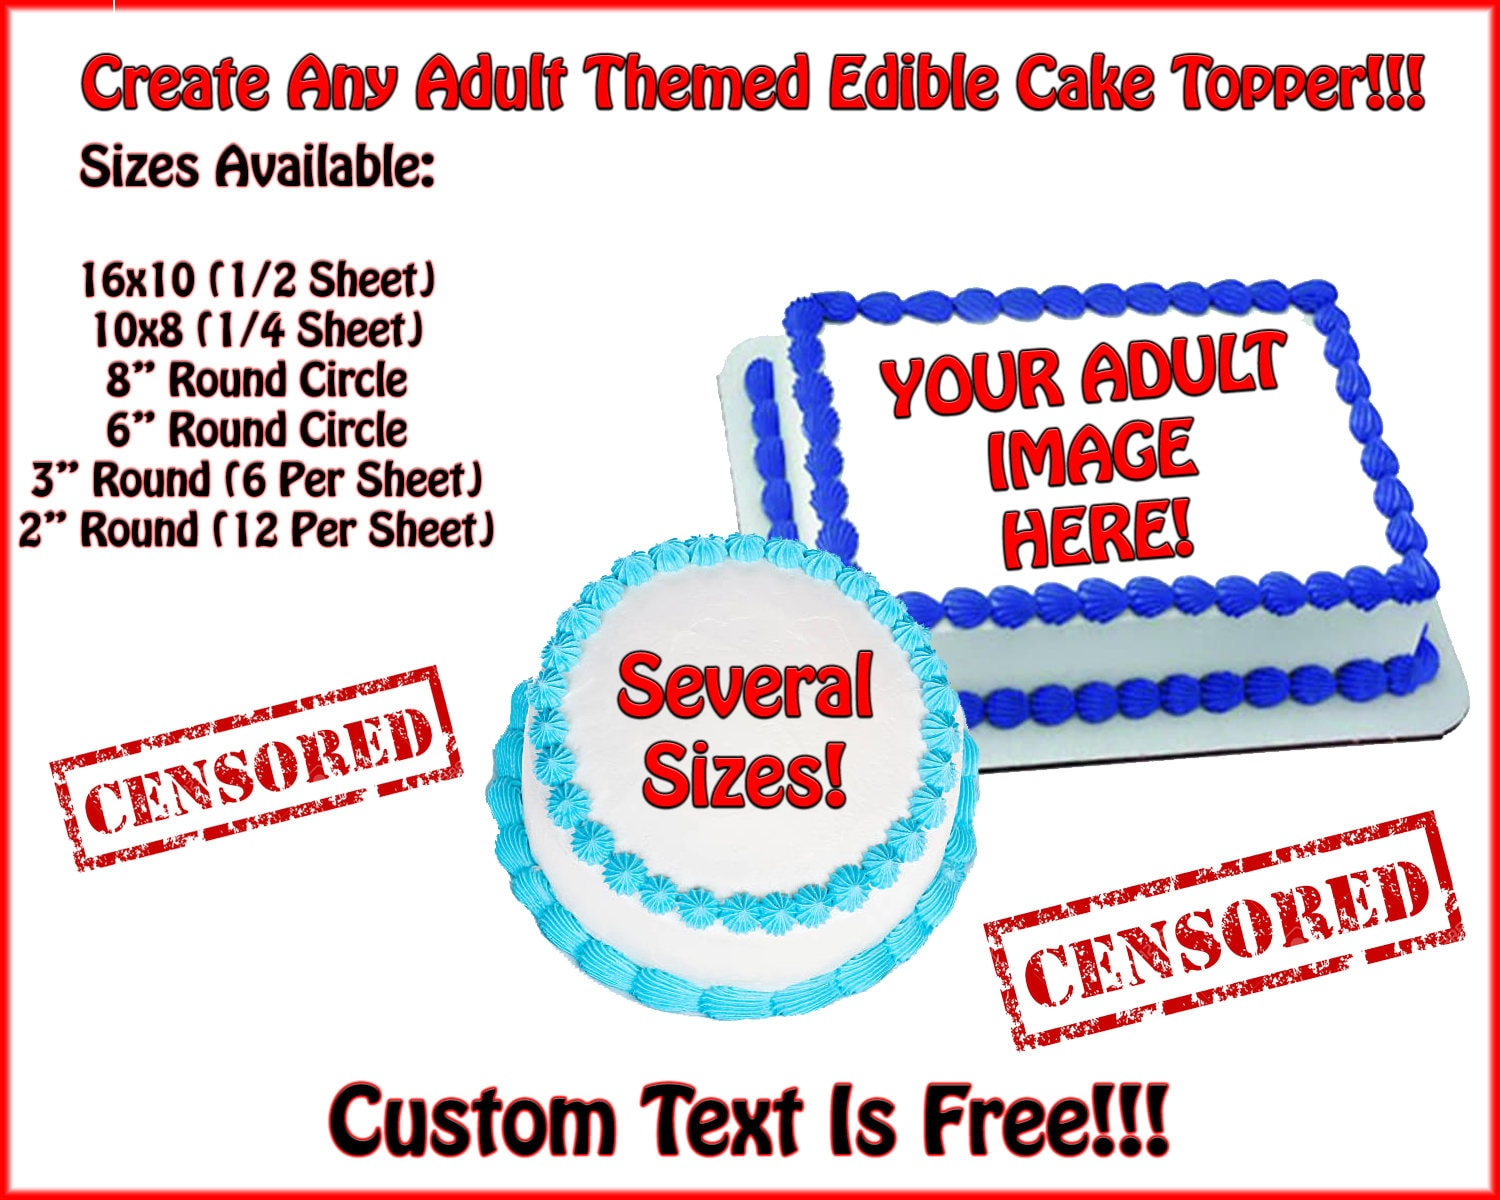 photo regarding Printable Edible Cake Toppers referred to as Grownup Themed Customized Posted Edible Cake or Cupcake